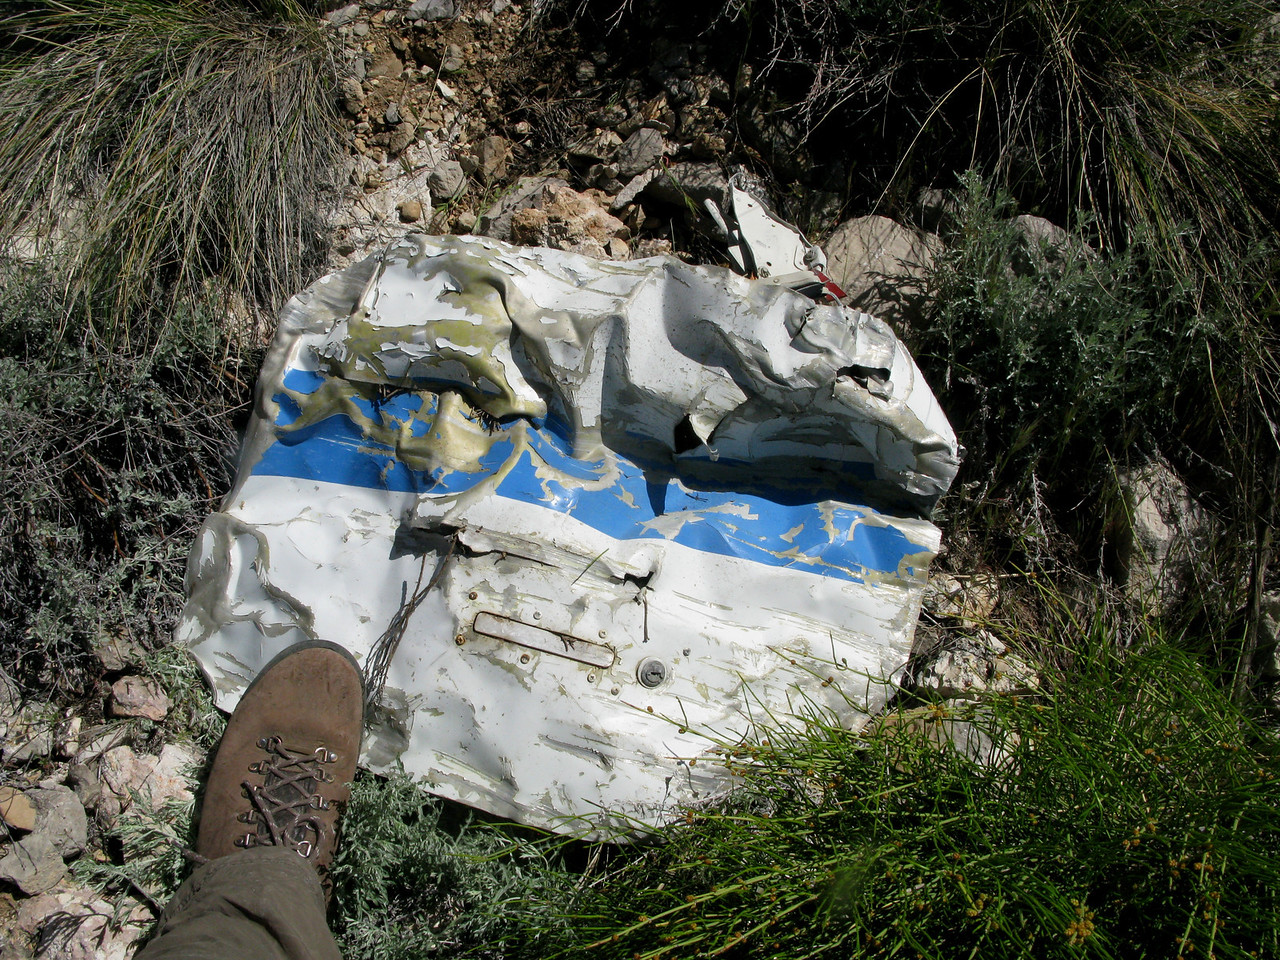 Flight 88's nose baggage door was thrown clear of the main wreckage and was found on the ledge.